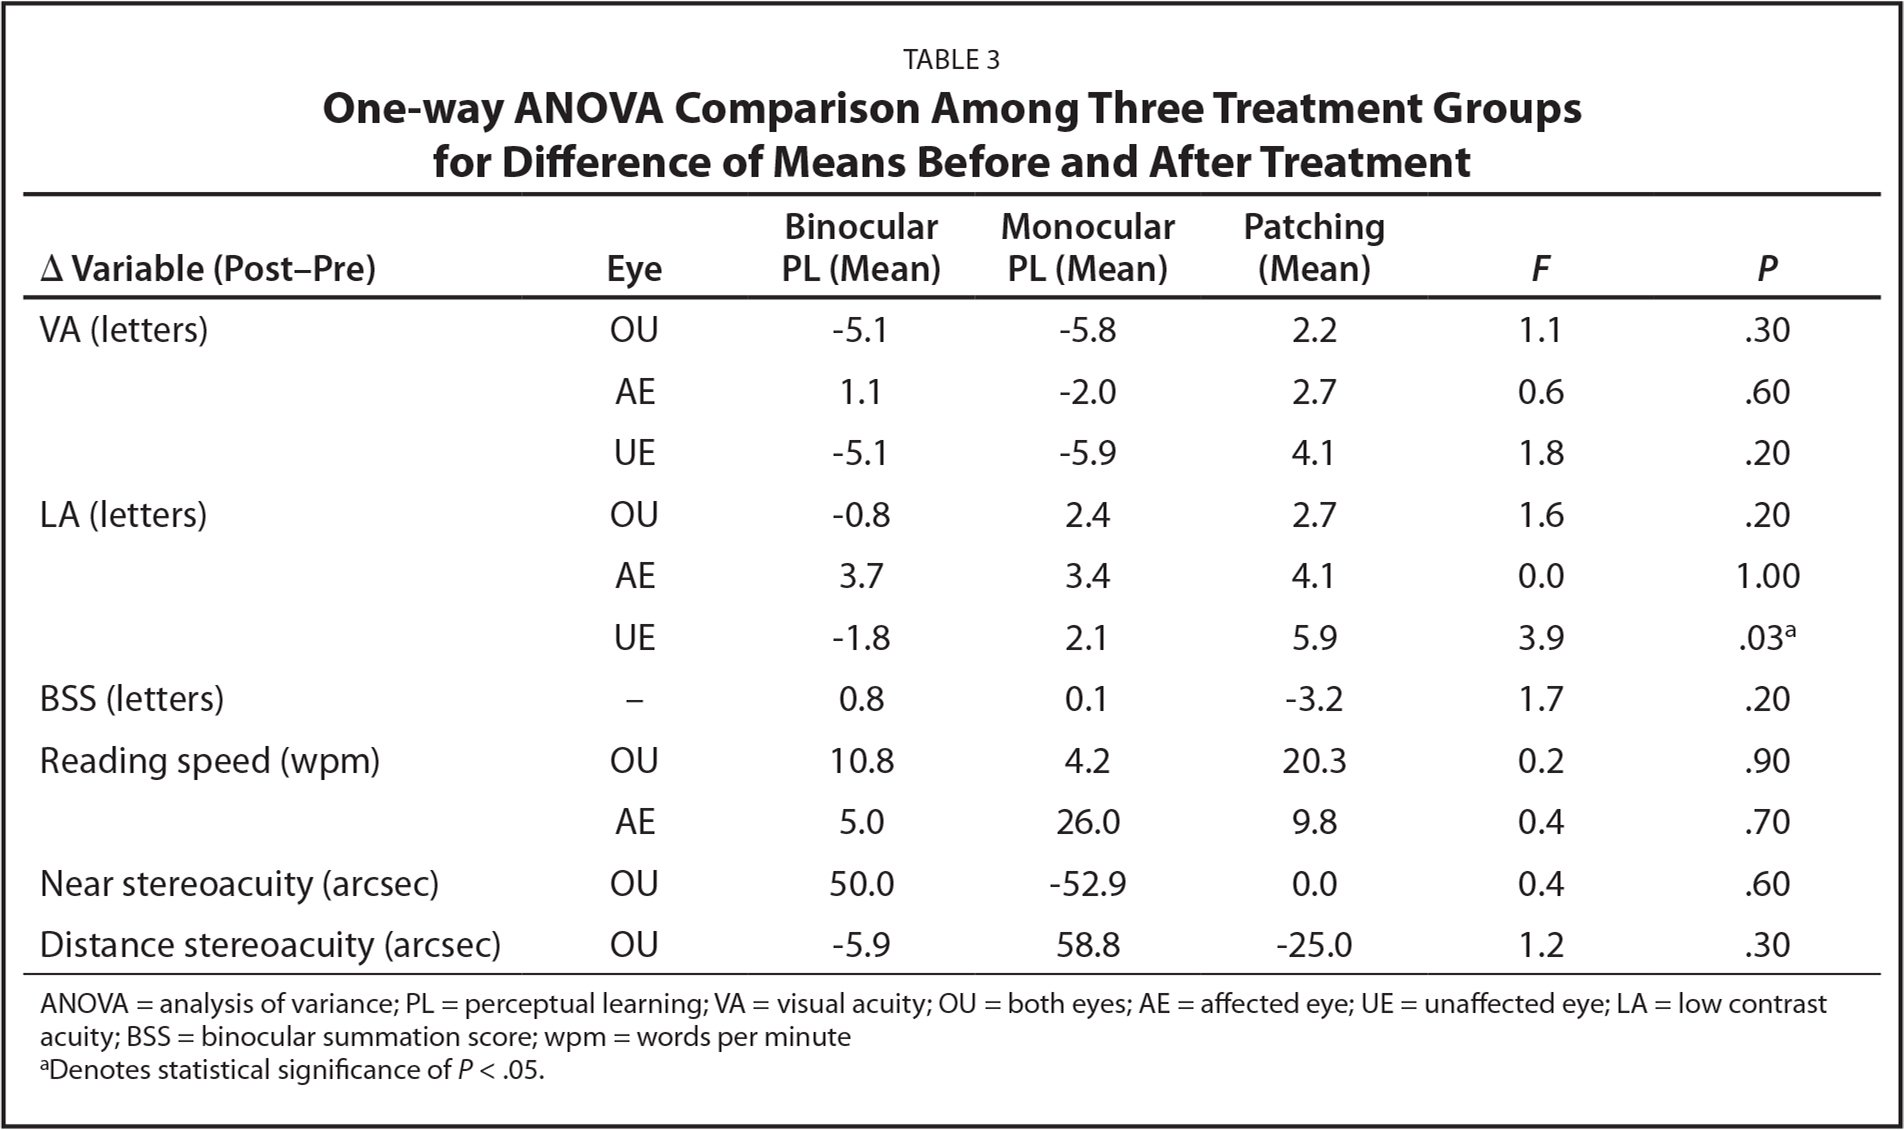 One-way ANOVA Comparison Among Three Treatment Groups for Difference of Means Before and After Treatment